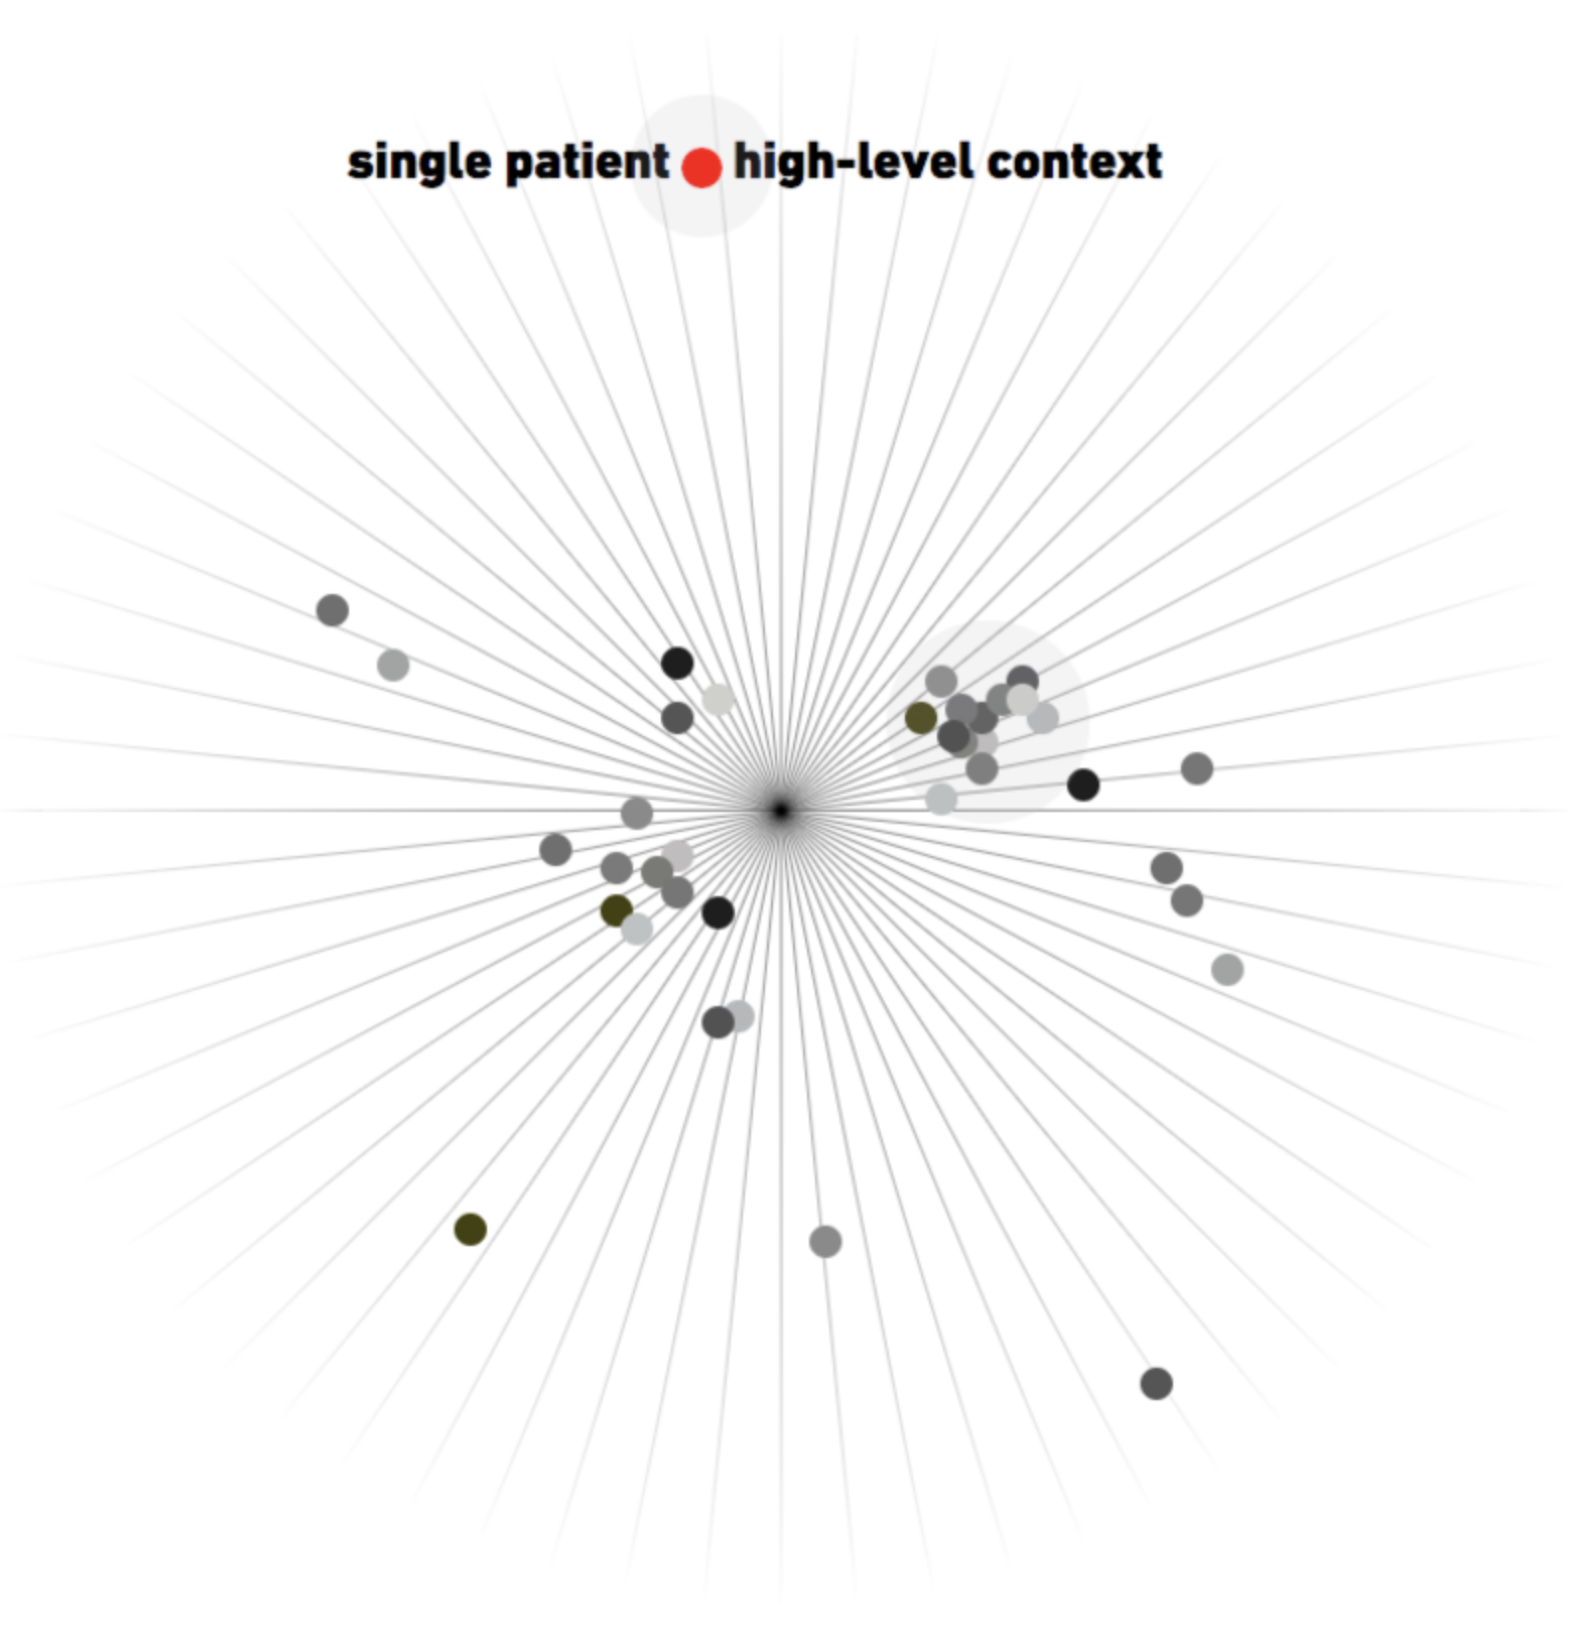 Single patient, high-level context